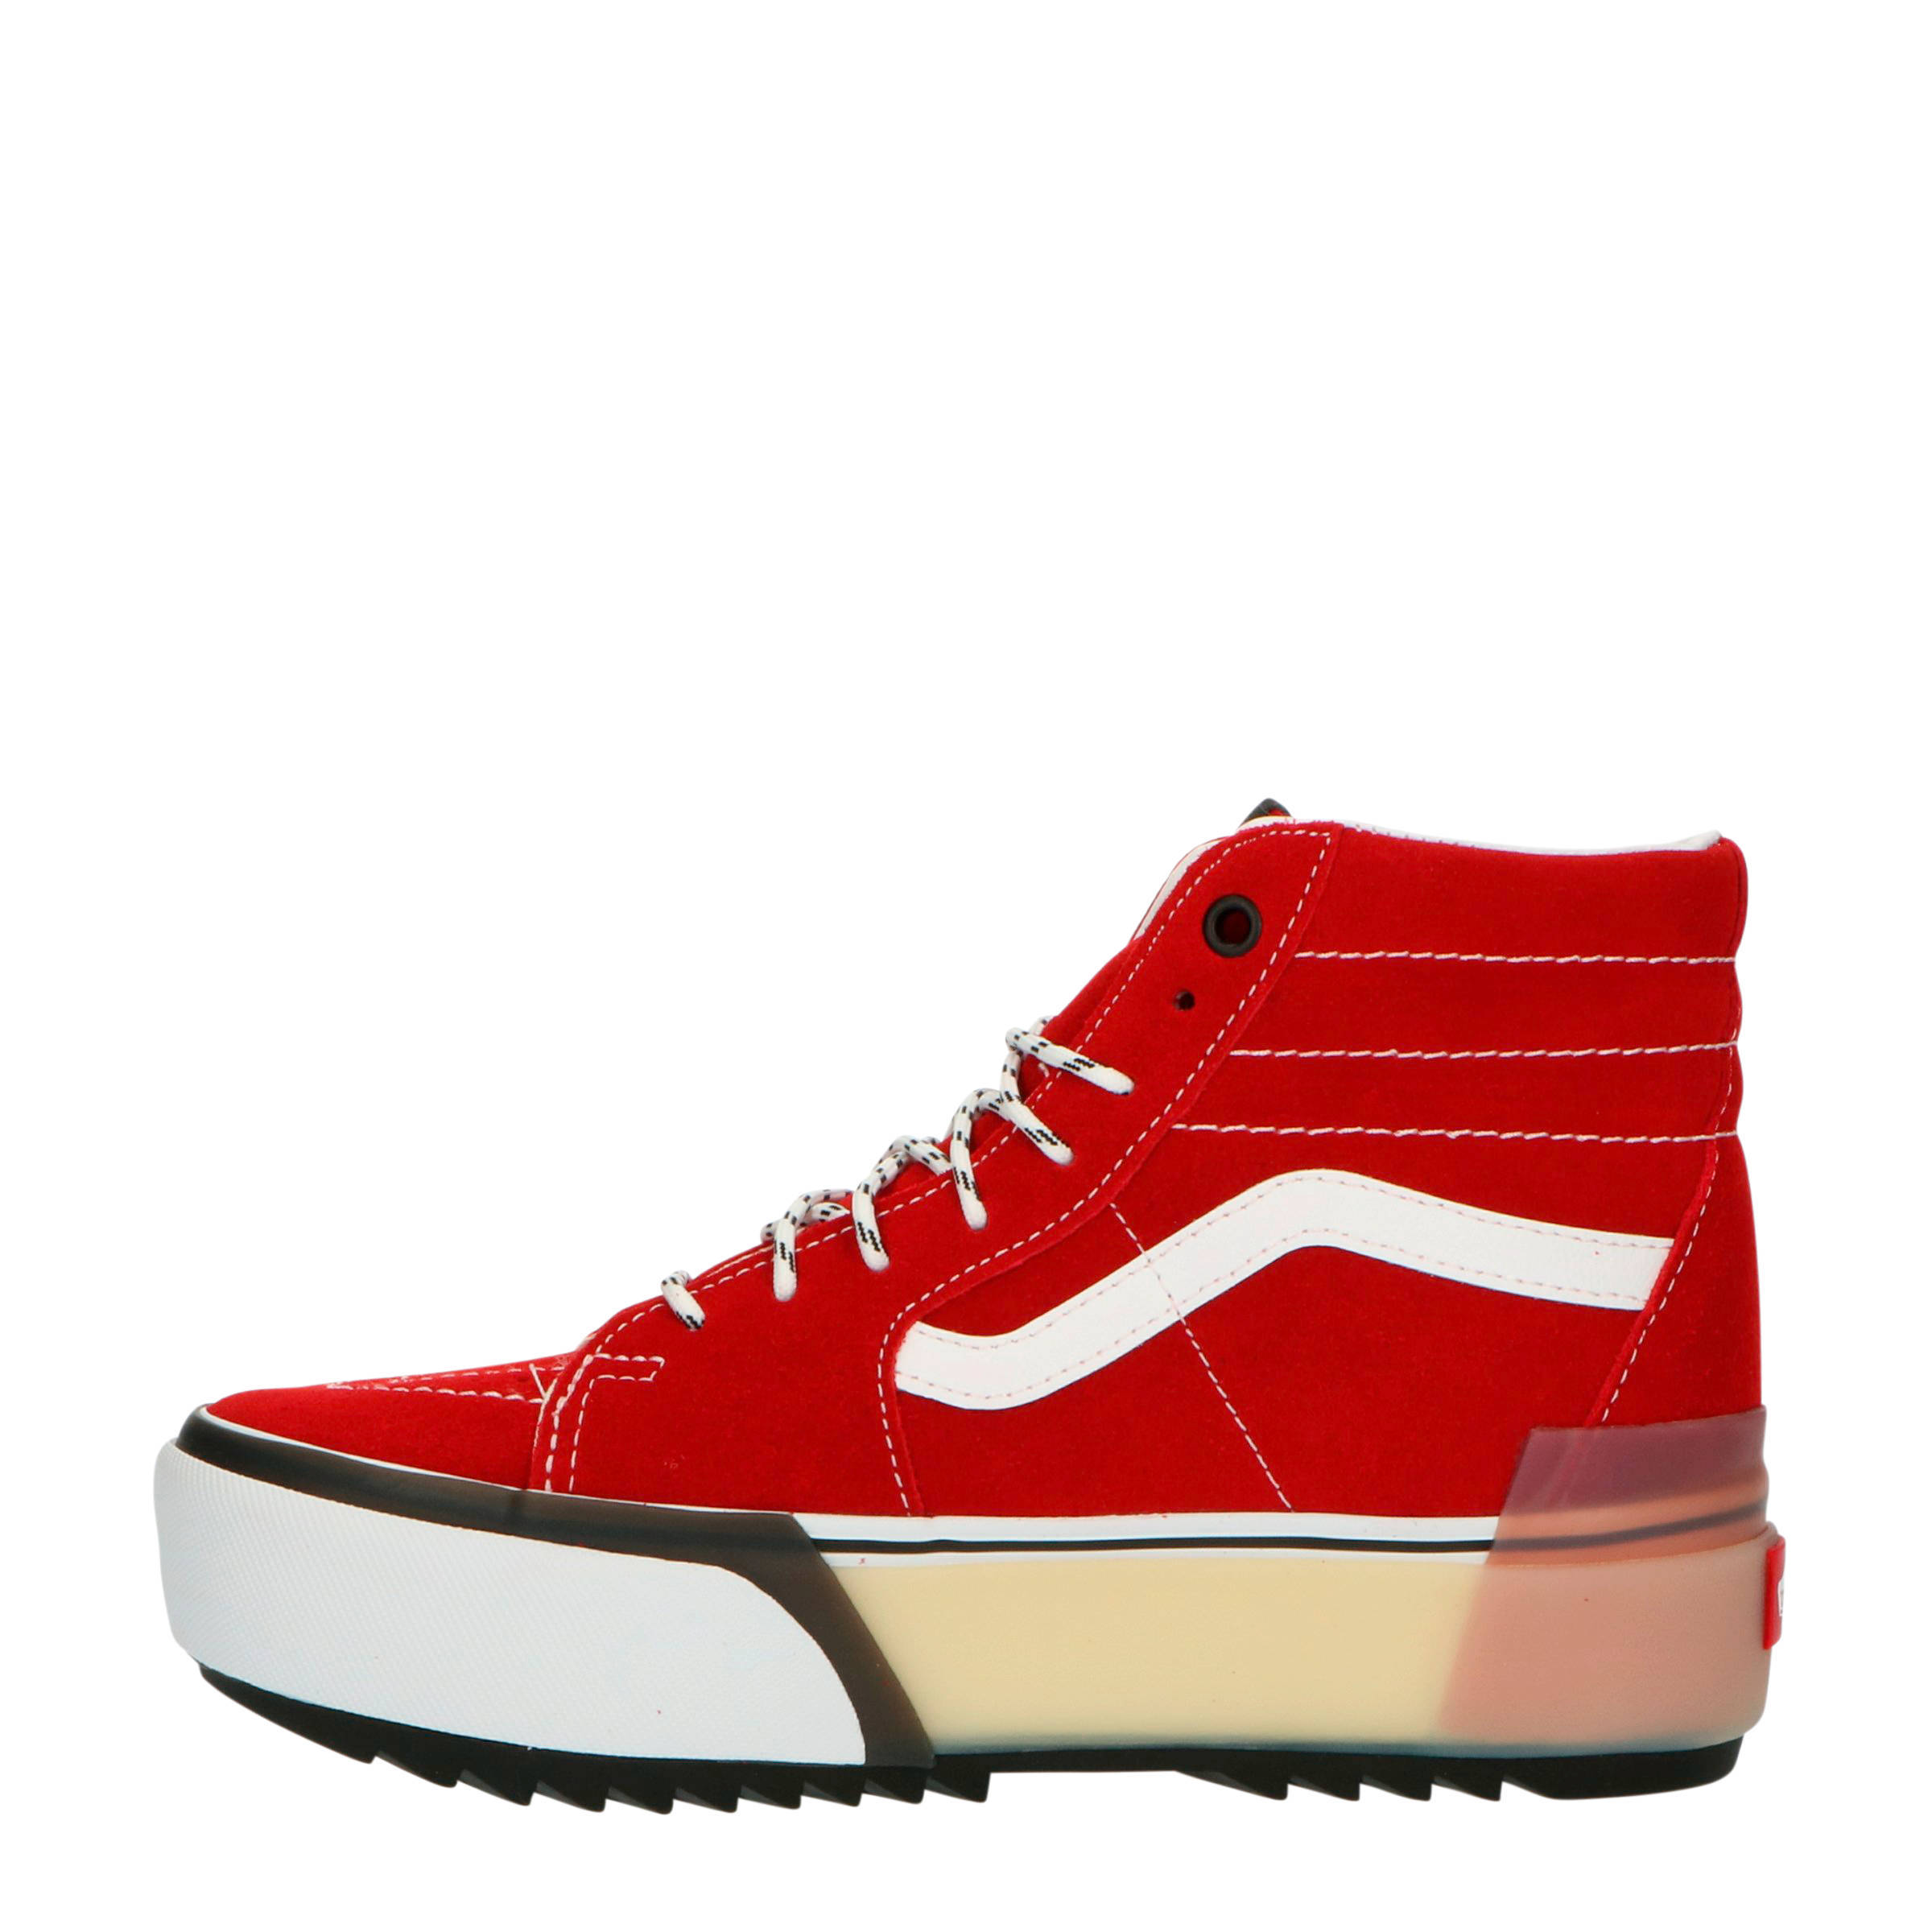 SK8 Hi Stacked suède plateau sneakers rood